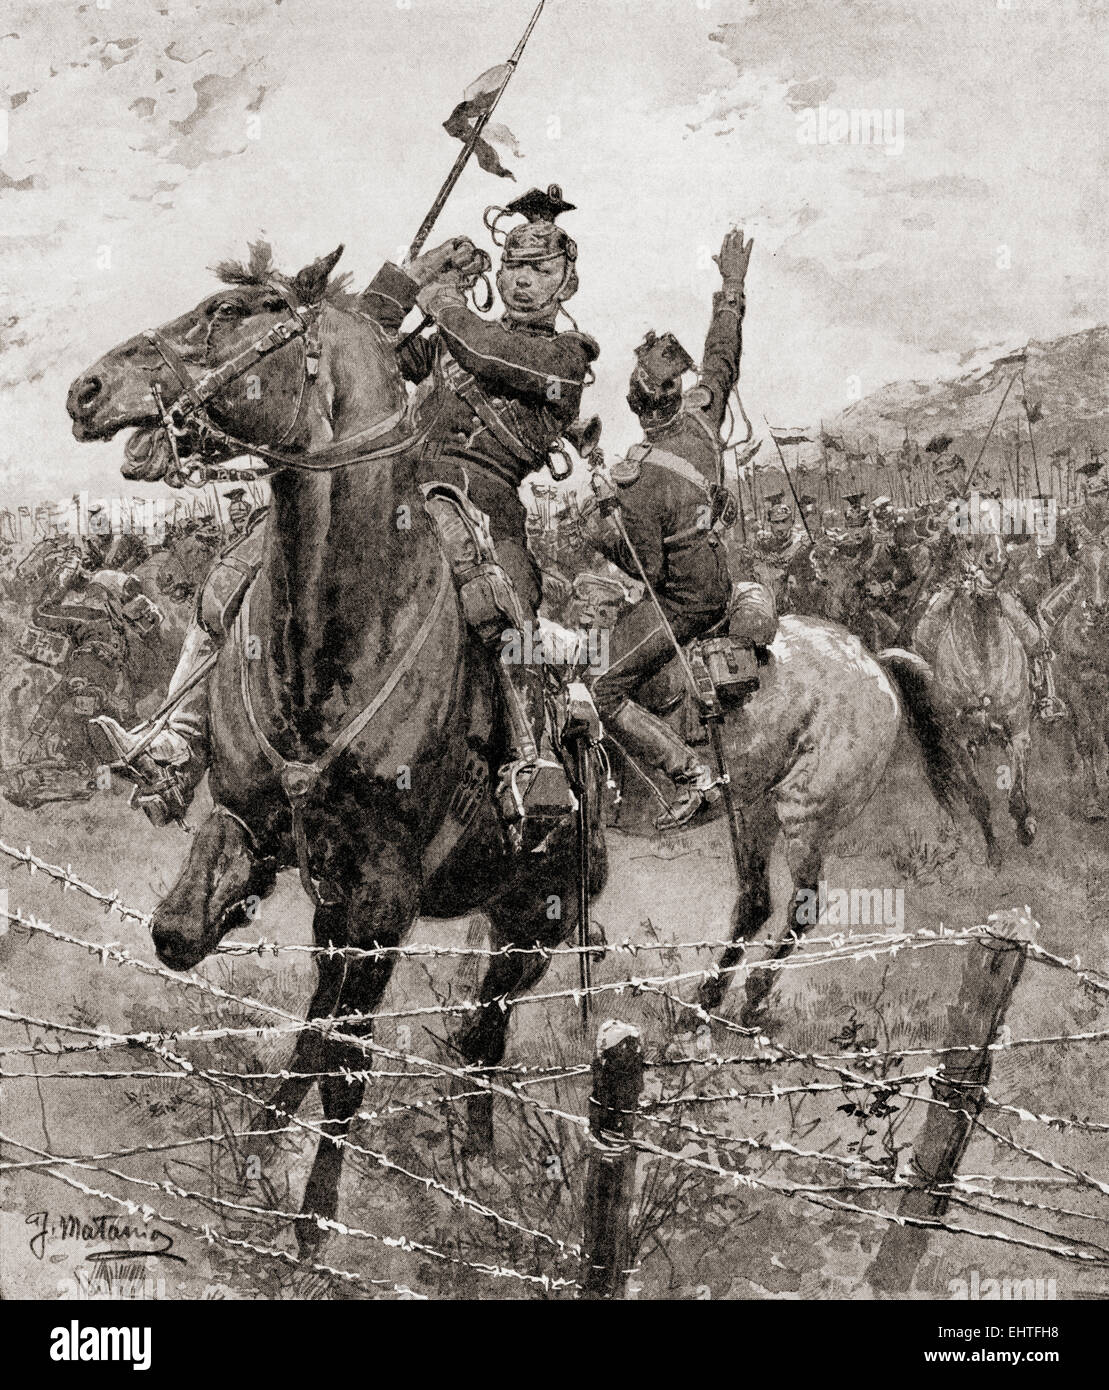 The German cavalry, the Uhlans, come up against barbed wire erected by the Belgians to stop their advance during - Stock Image